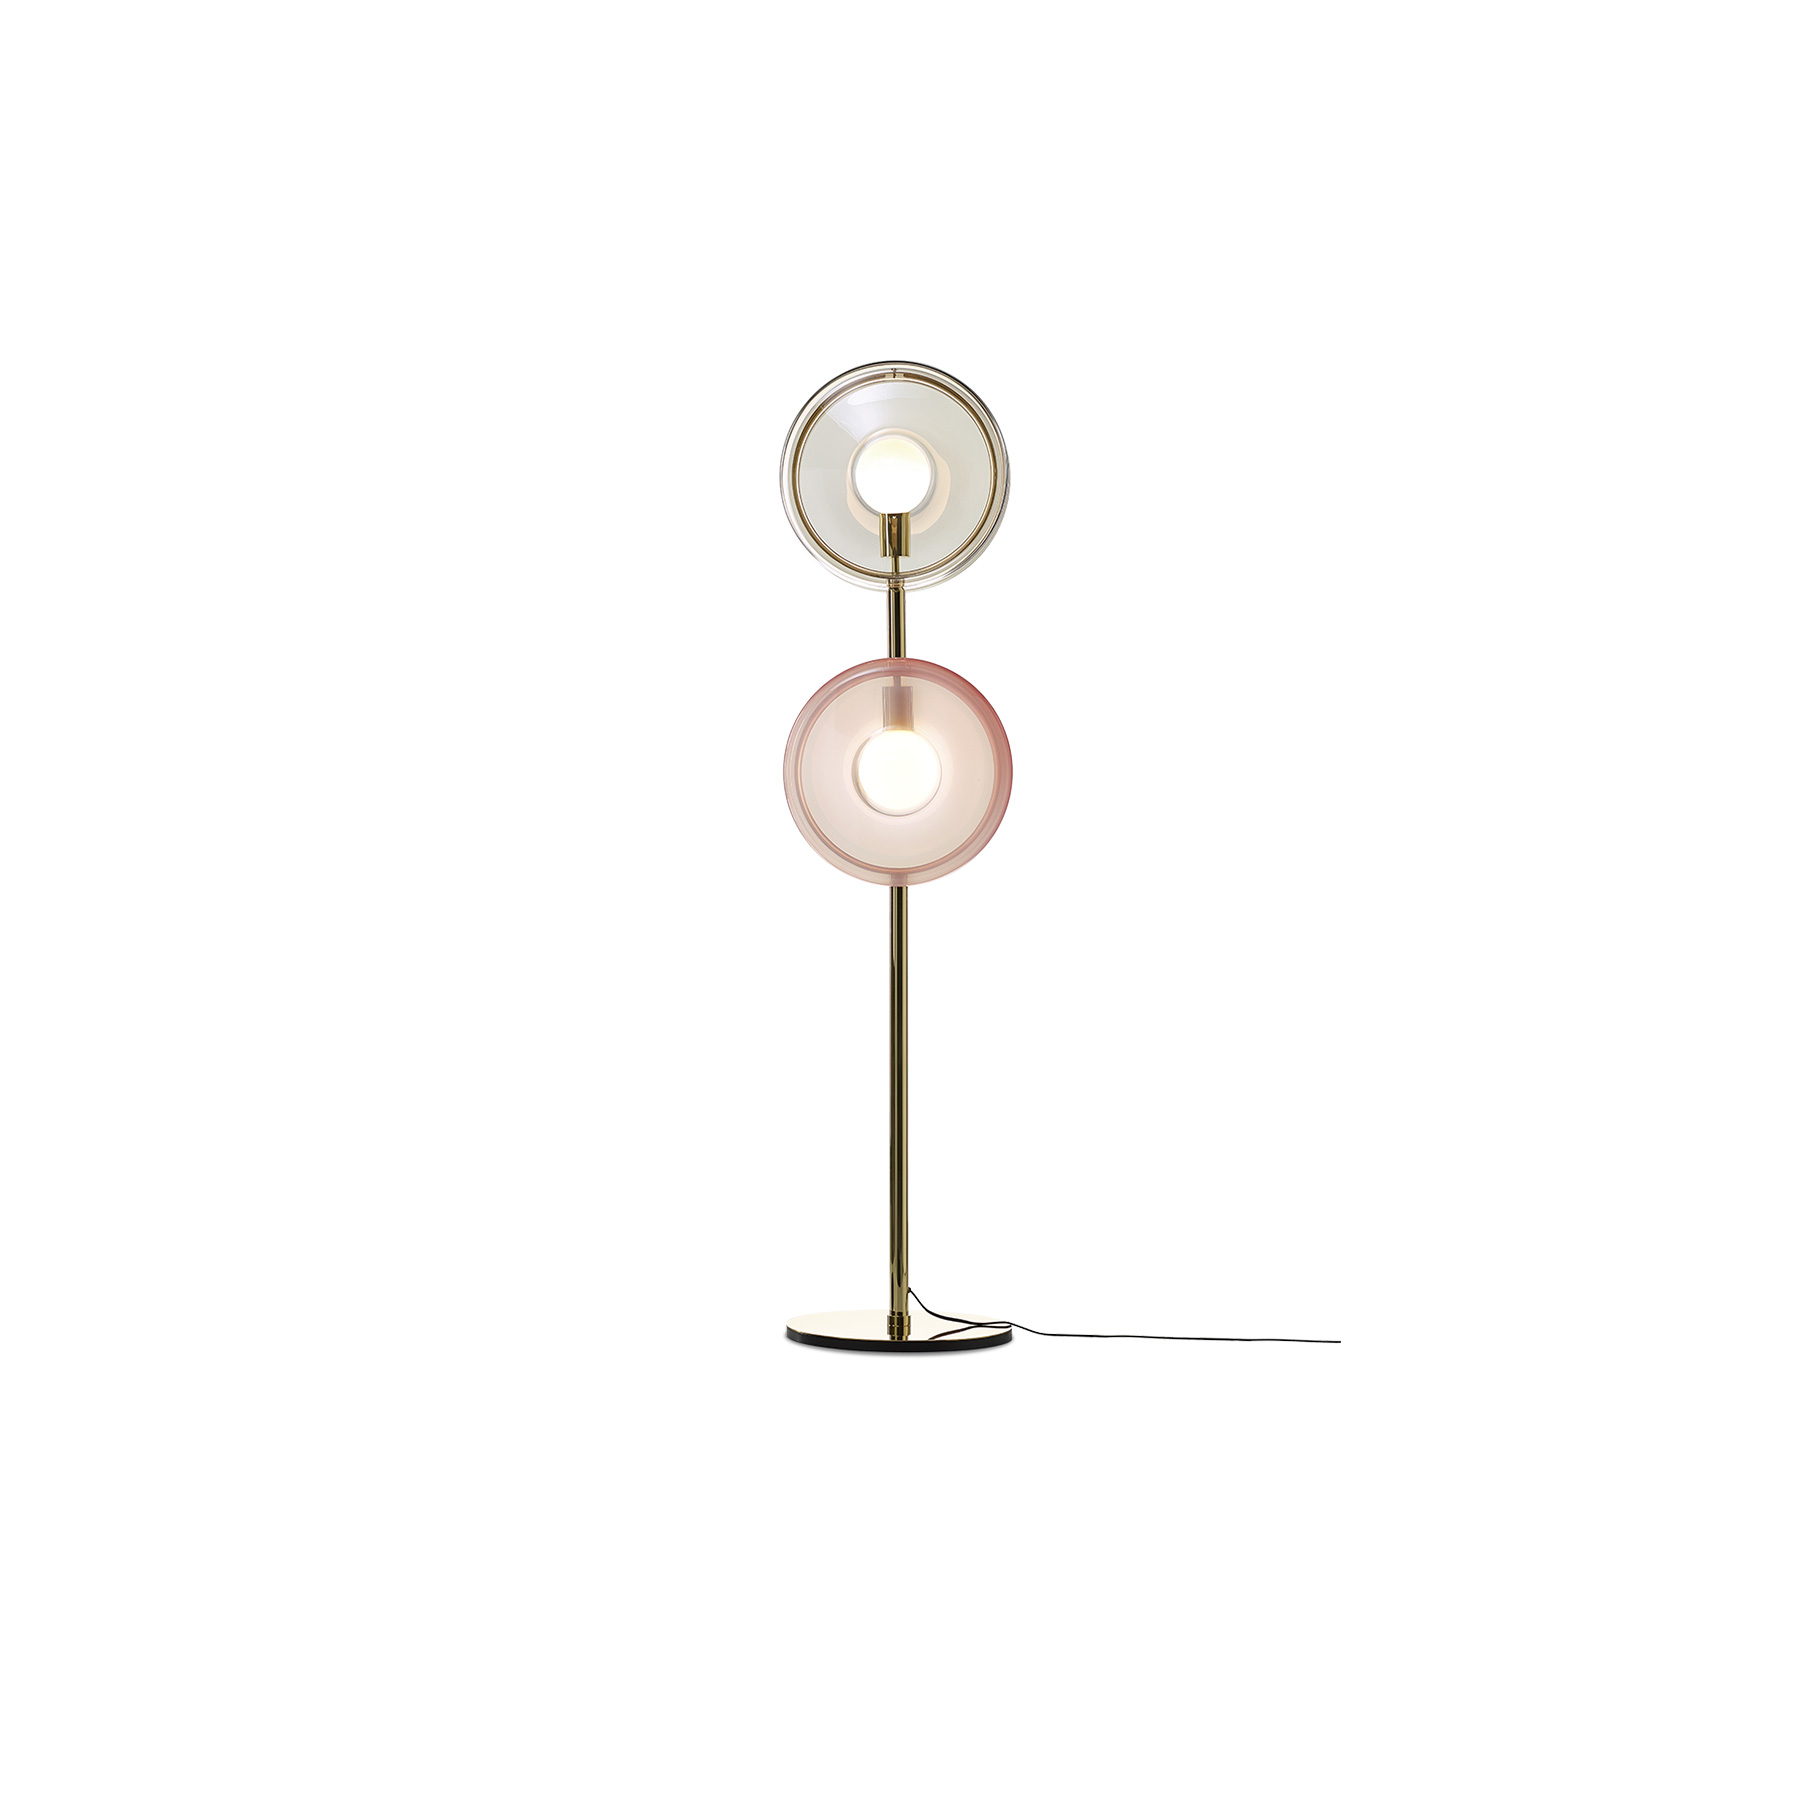 Orbital Floor Lamp - Orbital paths of multicolored celestial bodies with hypnotically glowing cores. This ingenious design of hand-blown glass lenses, held together by a metal mounting, creates a fascinating visual experience from different angles. The glass parts of orbitals are mouth-blown thus the intensity of color and gradient may slightly vary. A range colours are available in a number of combinations. Prices may vary.  Please enquire for full details.